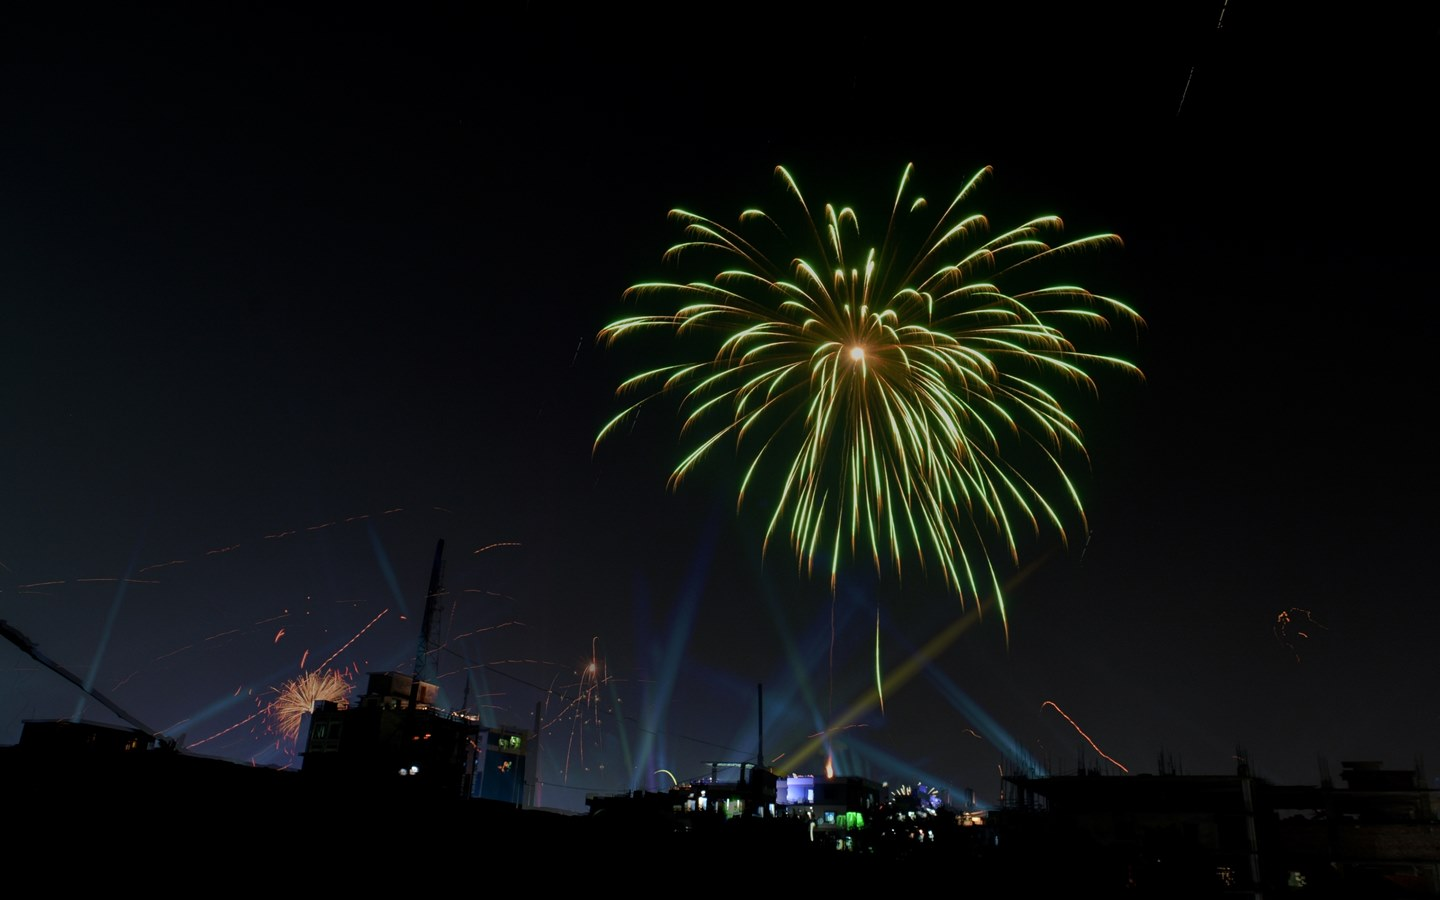 Spend a magical day in Old Dhaka an enjoy the fireworks